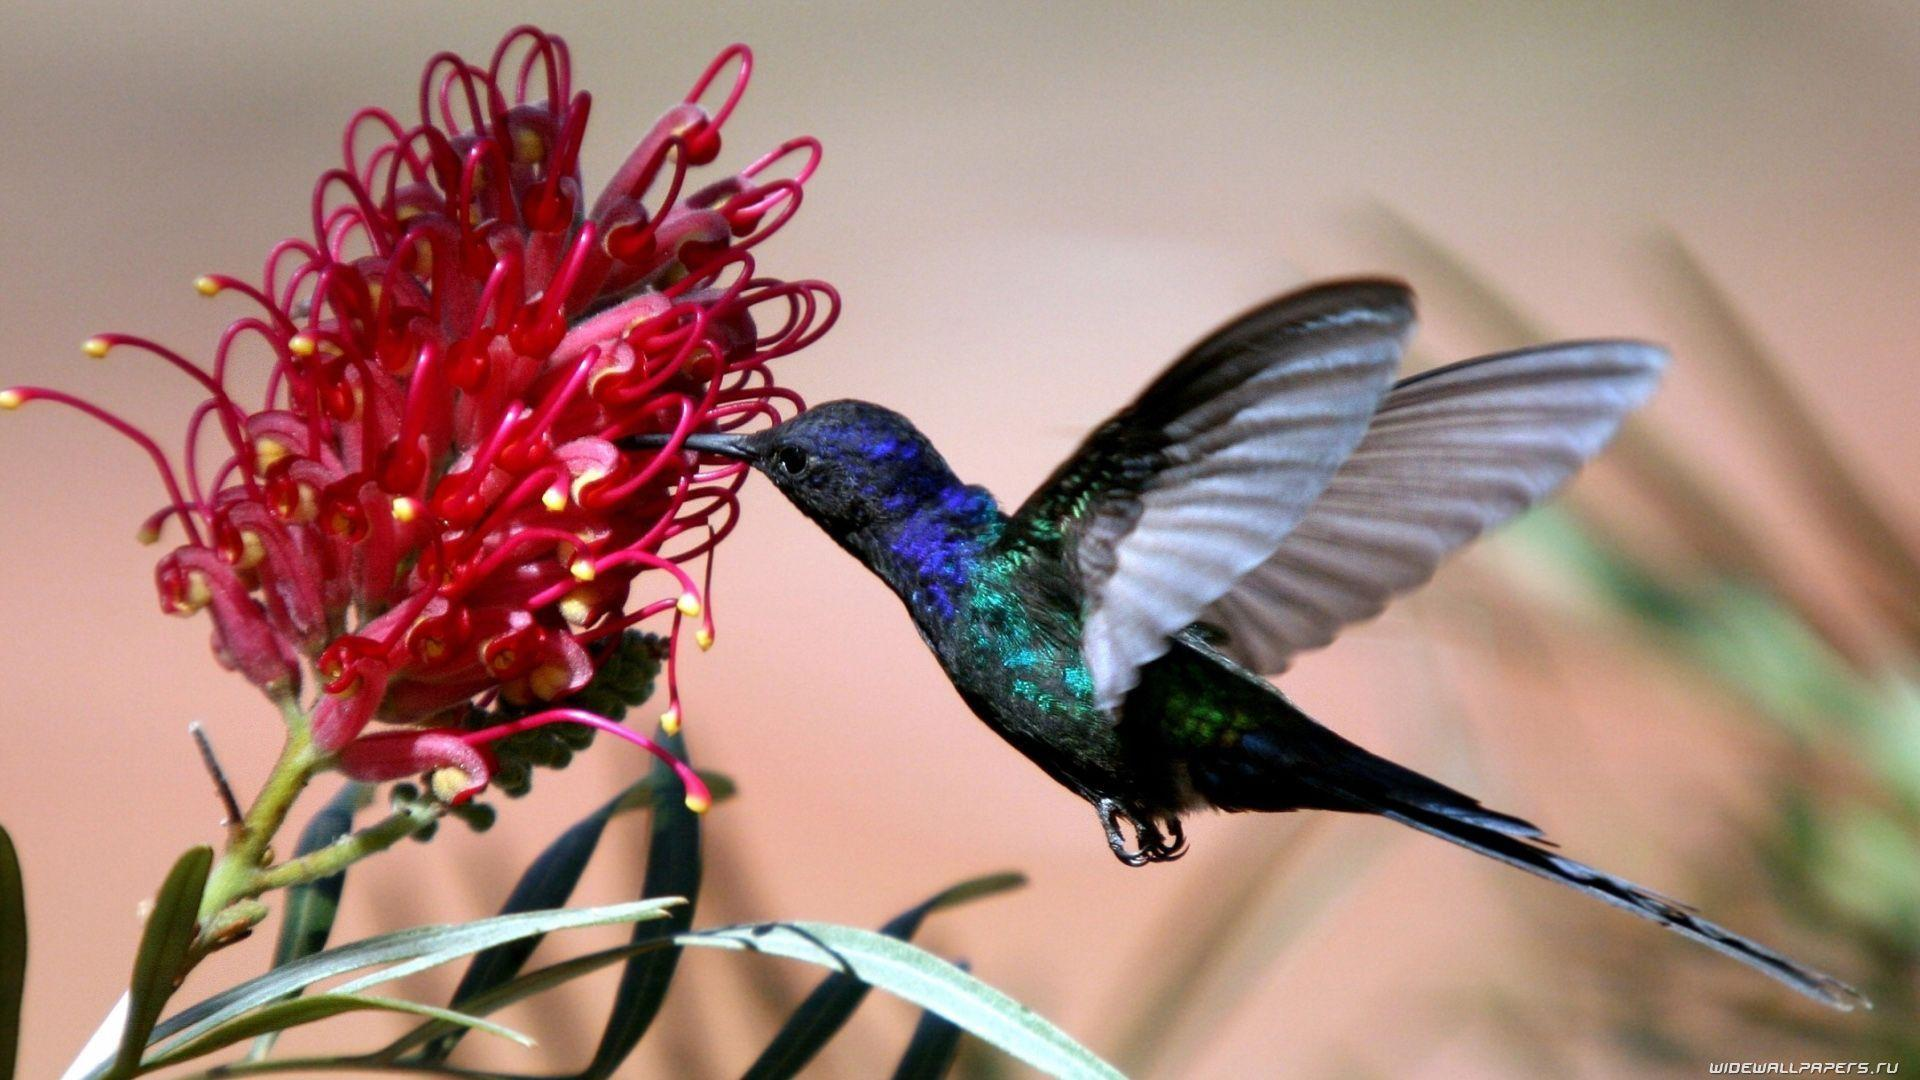 Bird And Flower Wallpapers